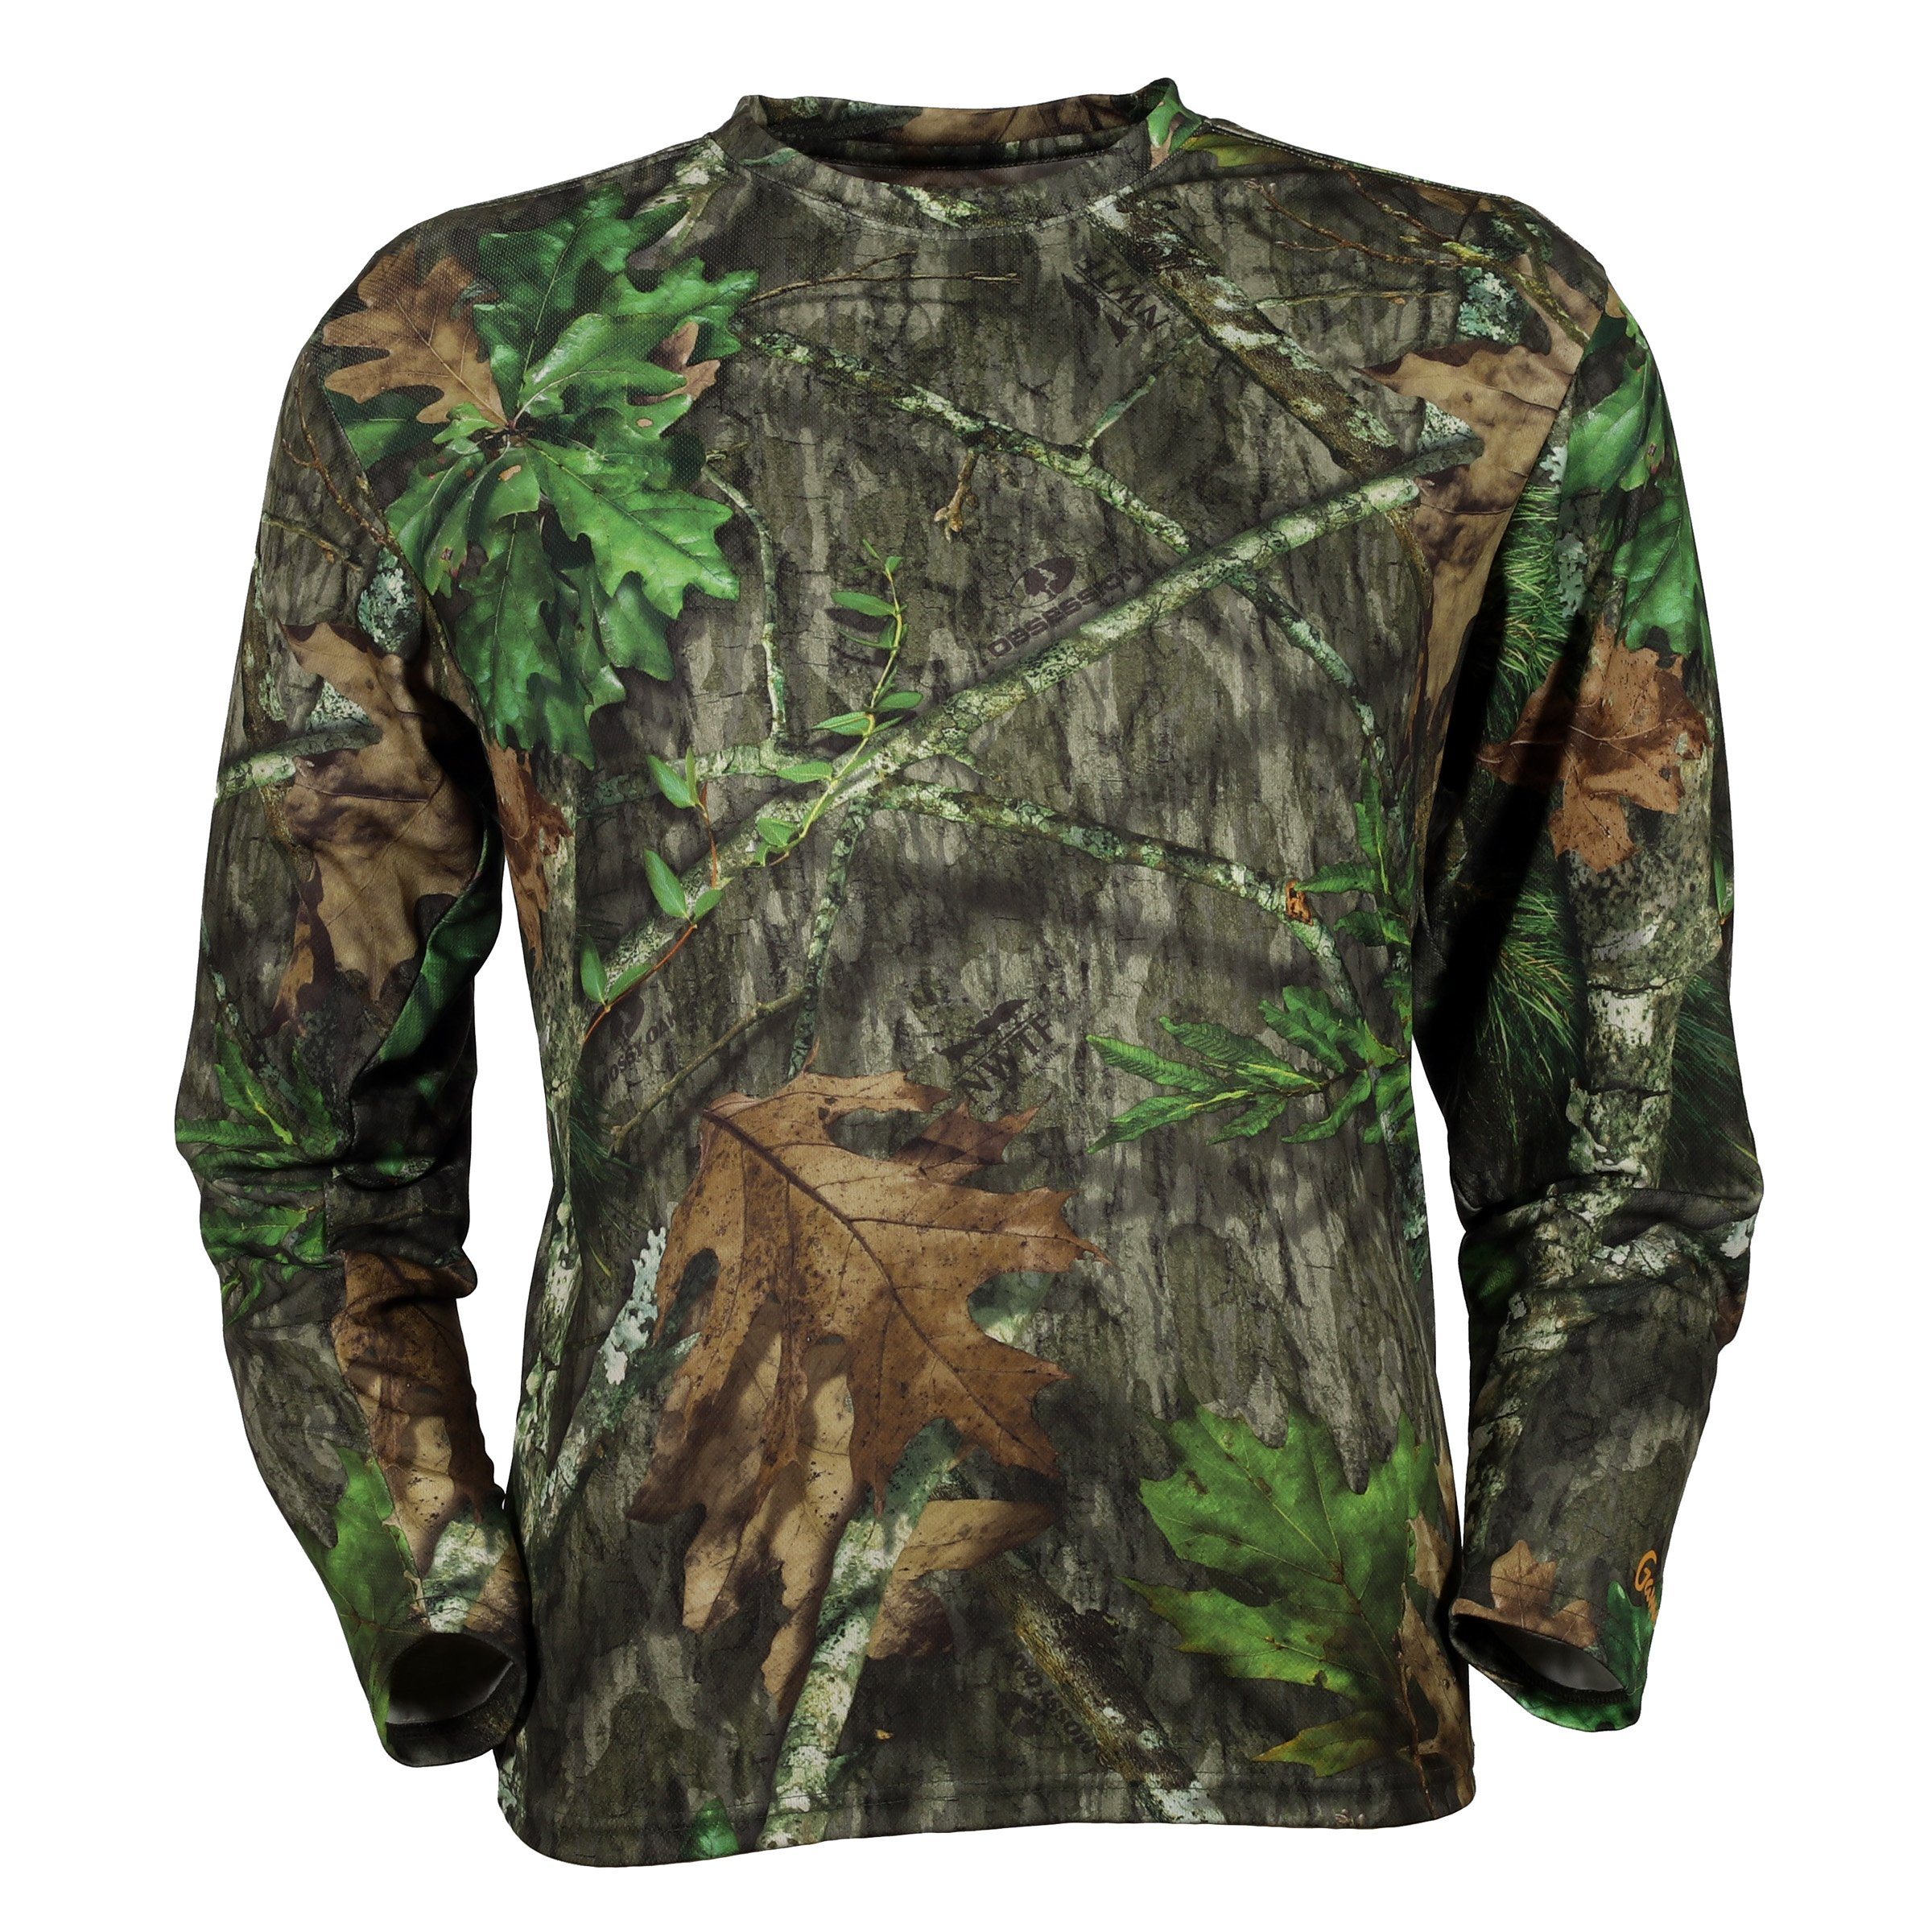 Gamehide ElimiTick Long Sleeve Tech Shirt (Mossy Oak Obsession, XL) by Gamehide